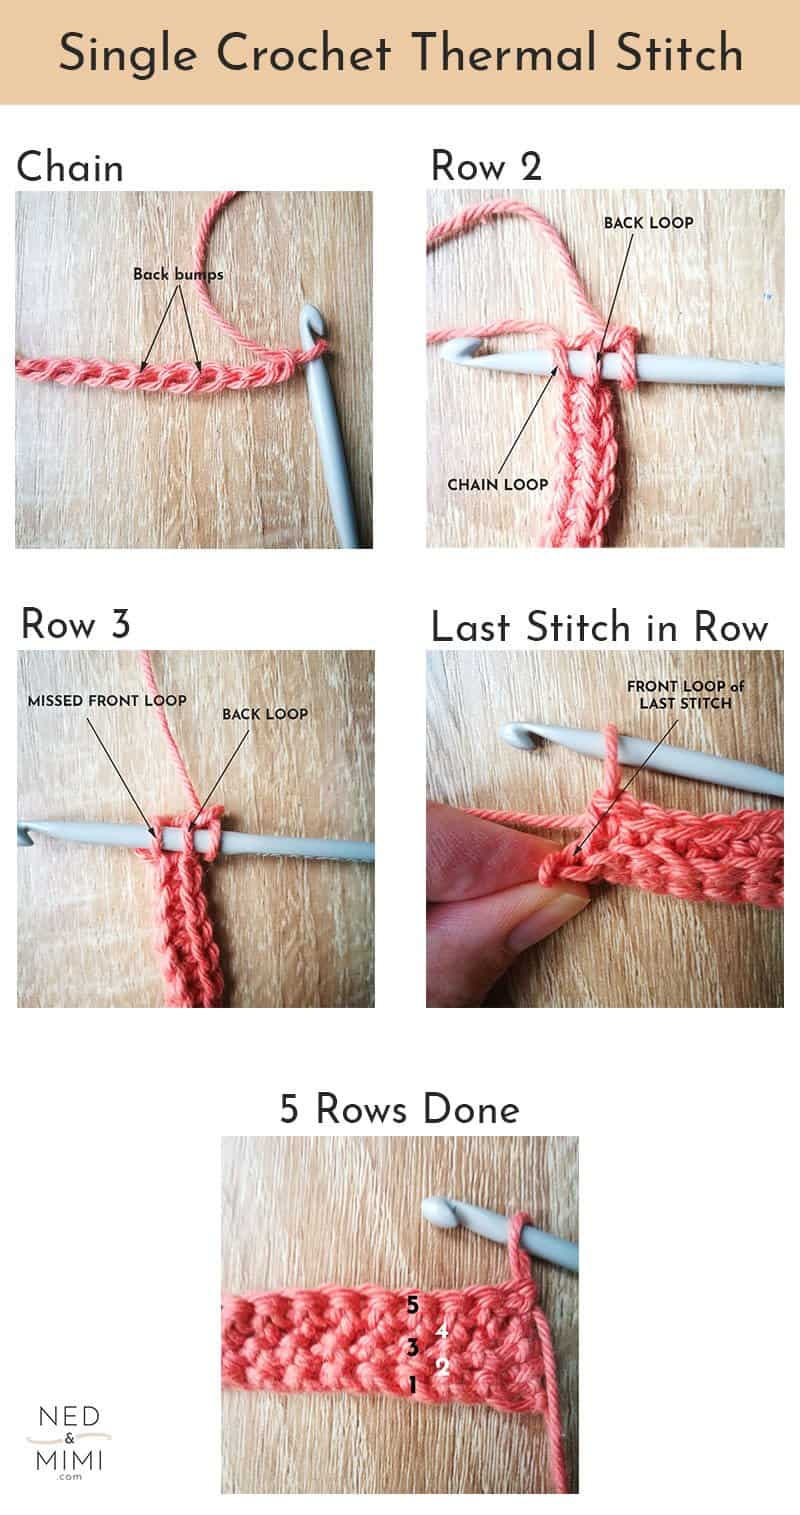 Thermal Single Crochet Steps